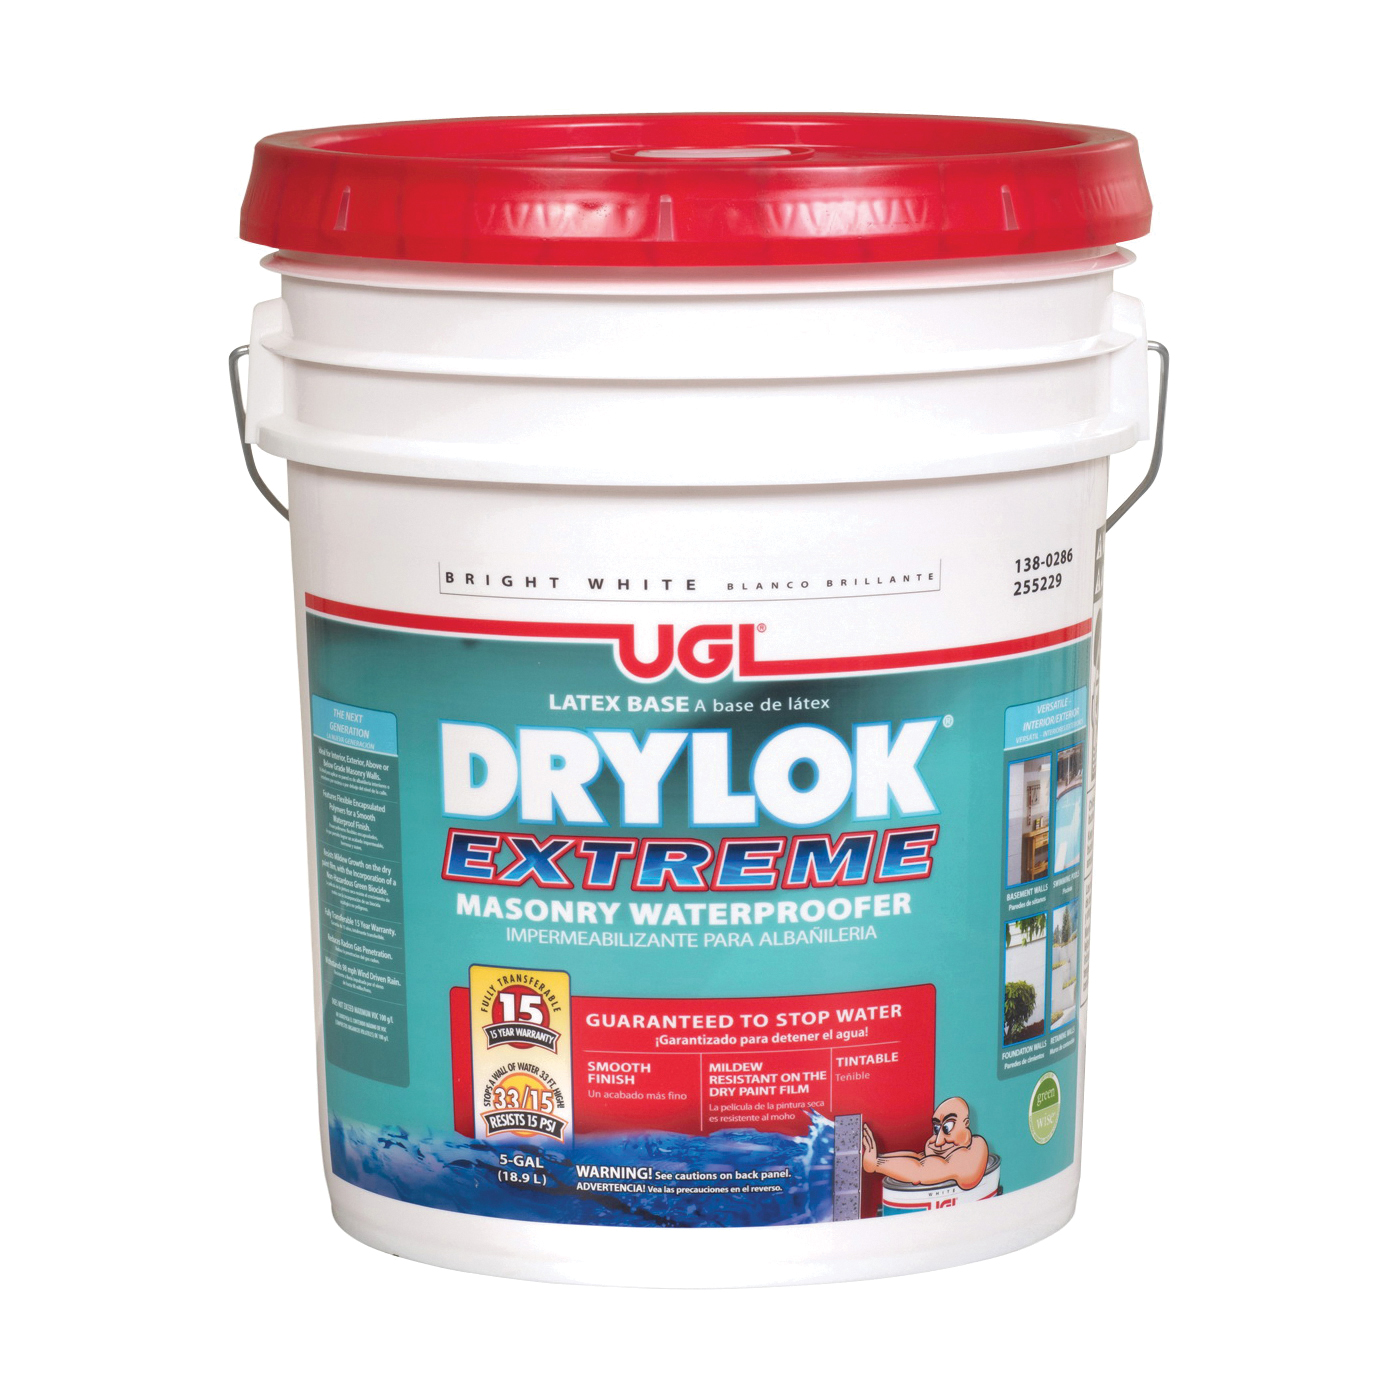 Picture of UGL DRYLOK EXTREME 28615 Masonry Waterproofer, White, Liquid, 5 gal Package, Pail